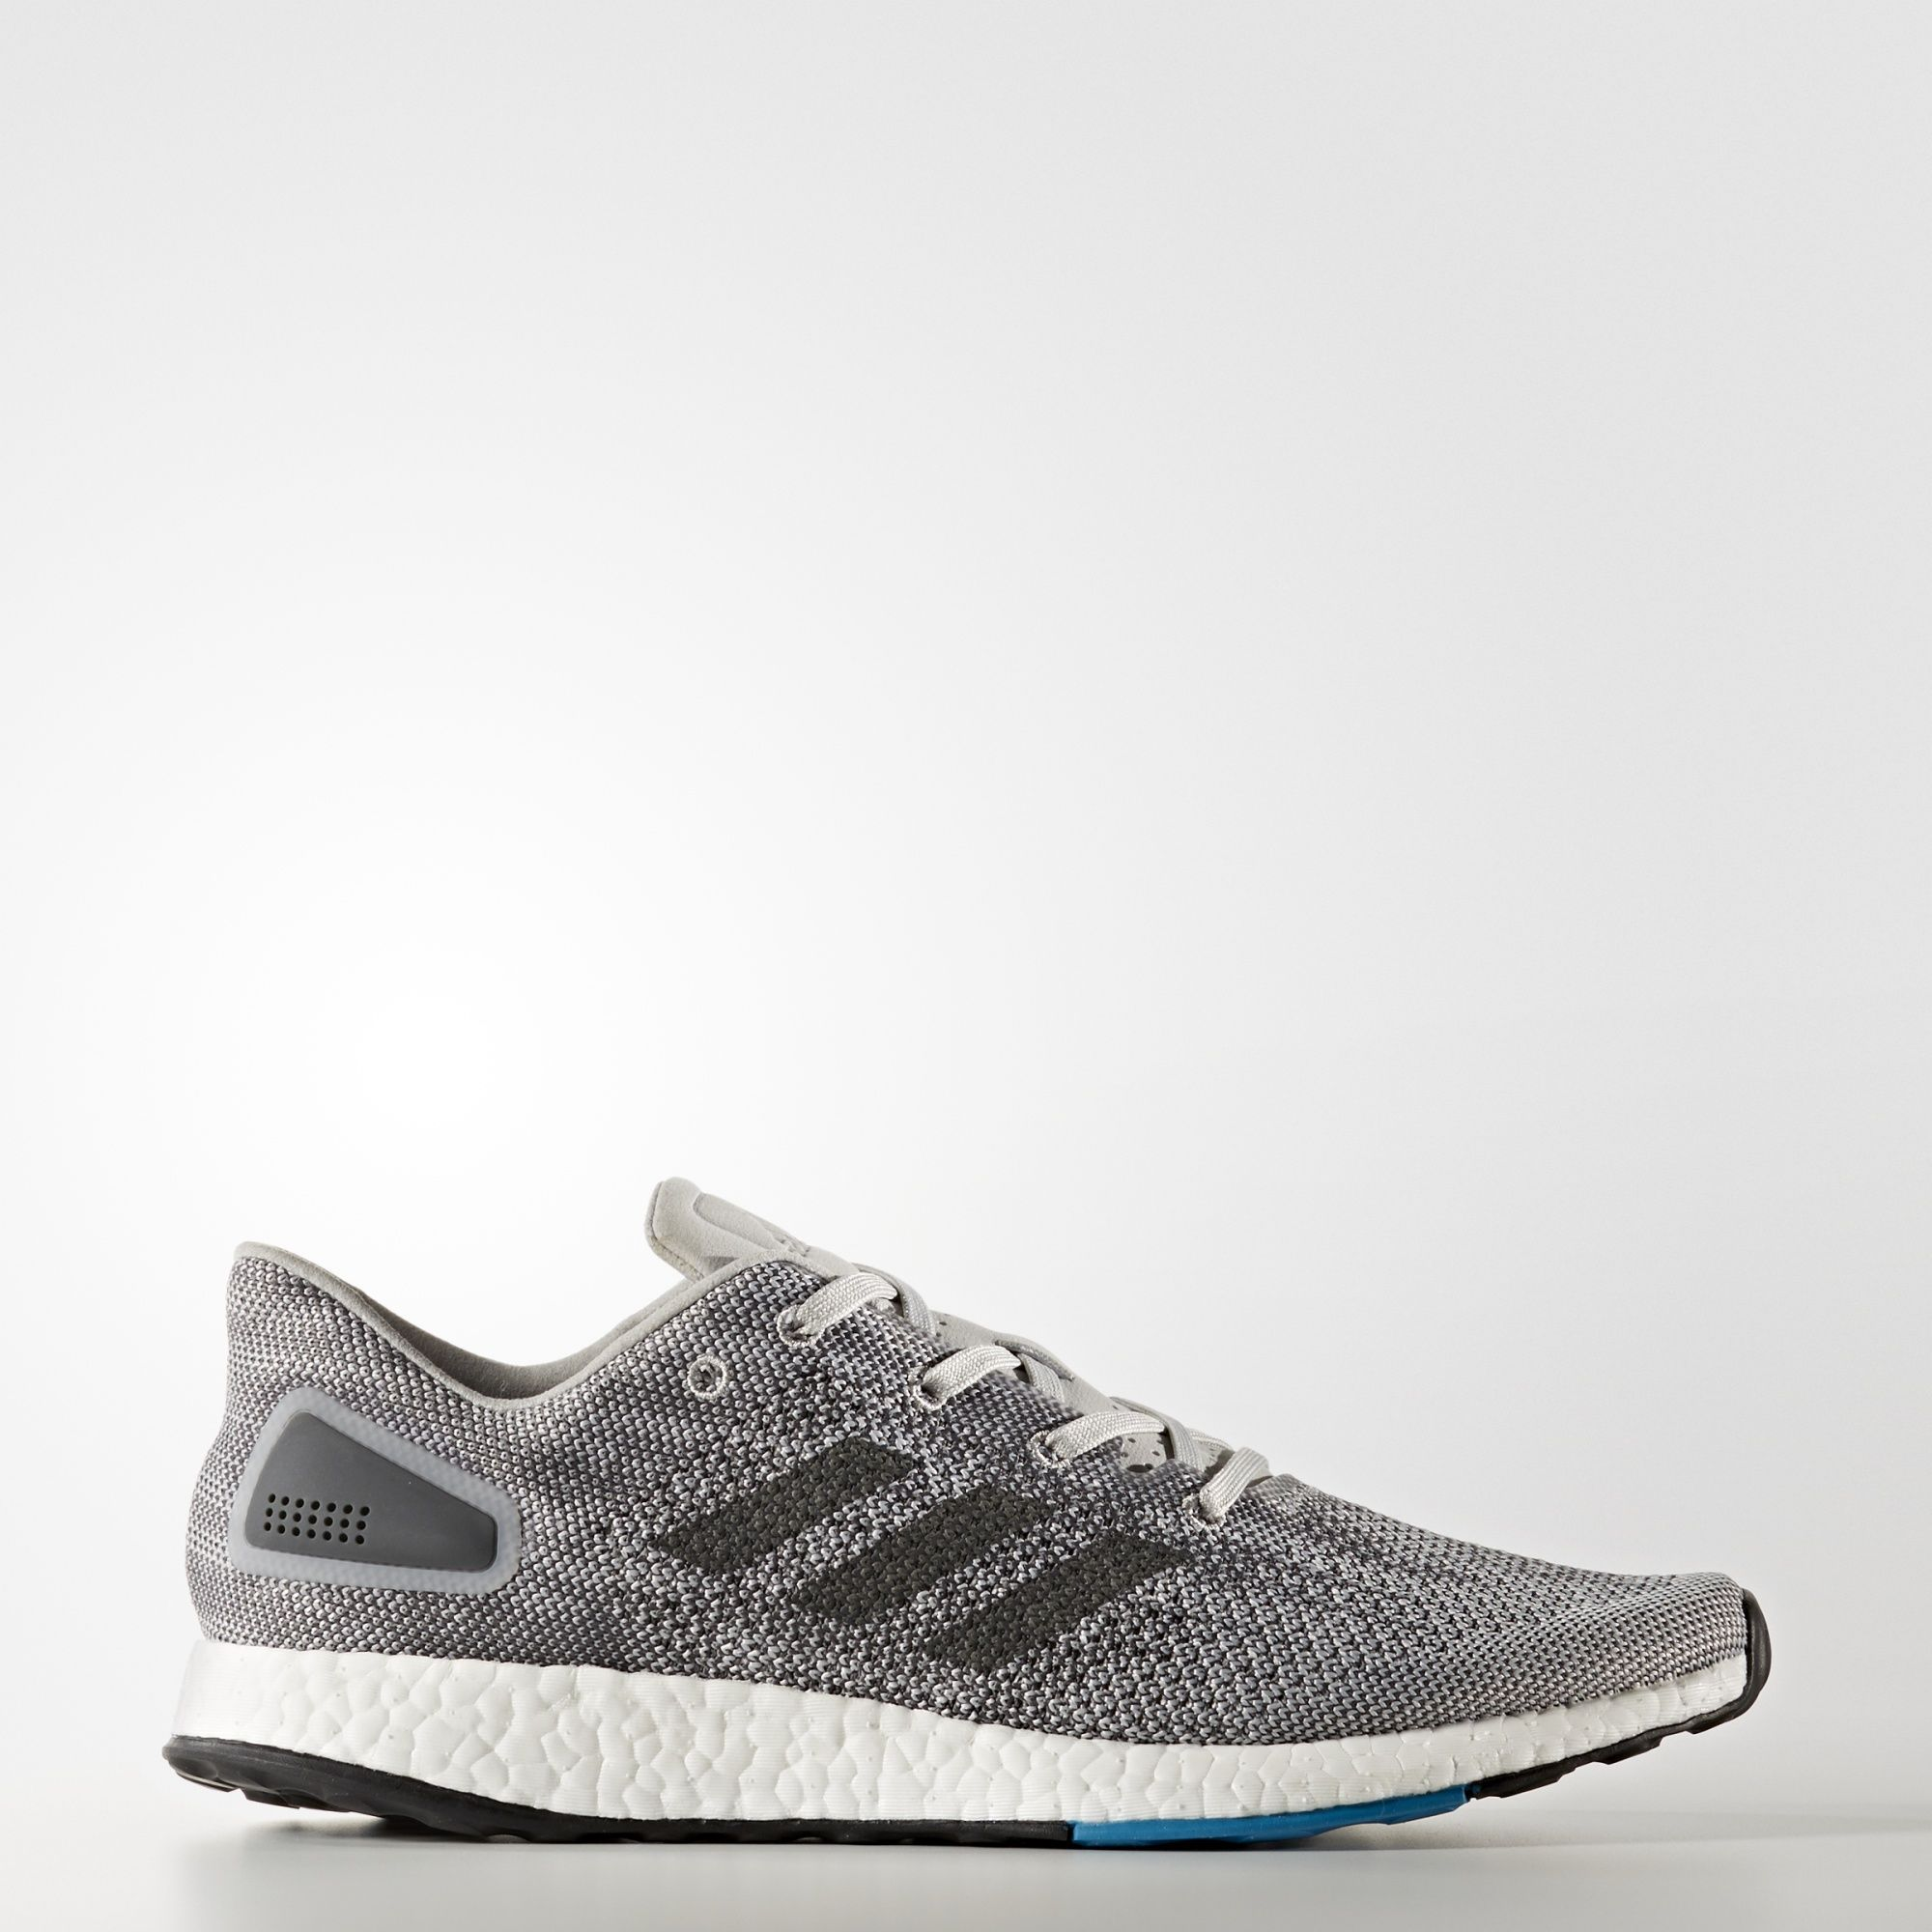 Pure Boost Dpr Shoes Adidas Pure Boost Pureboost Shoes